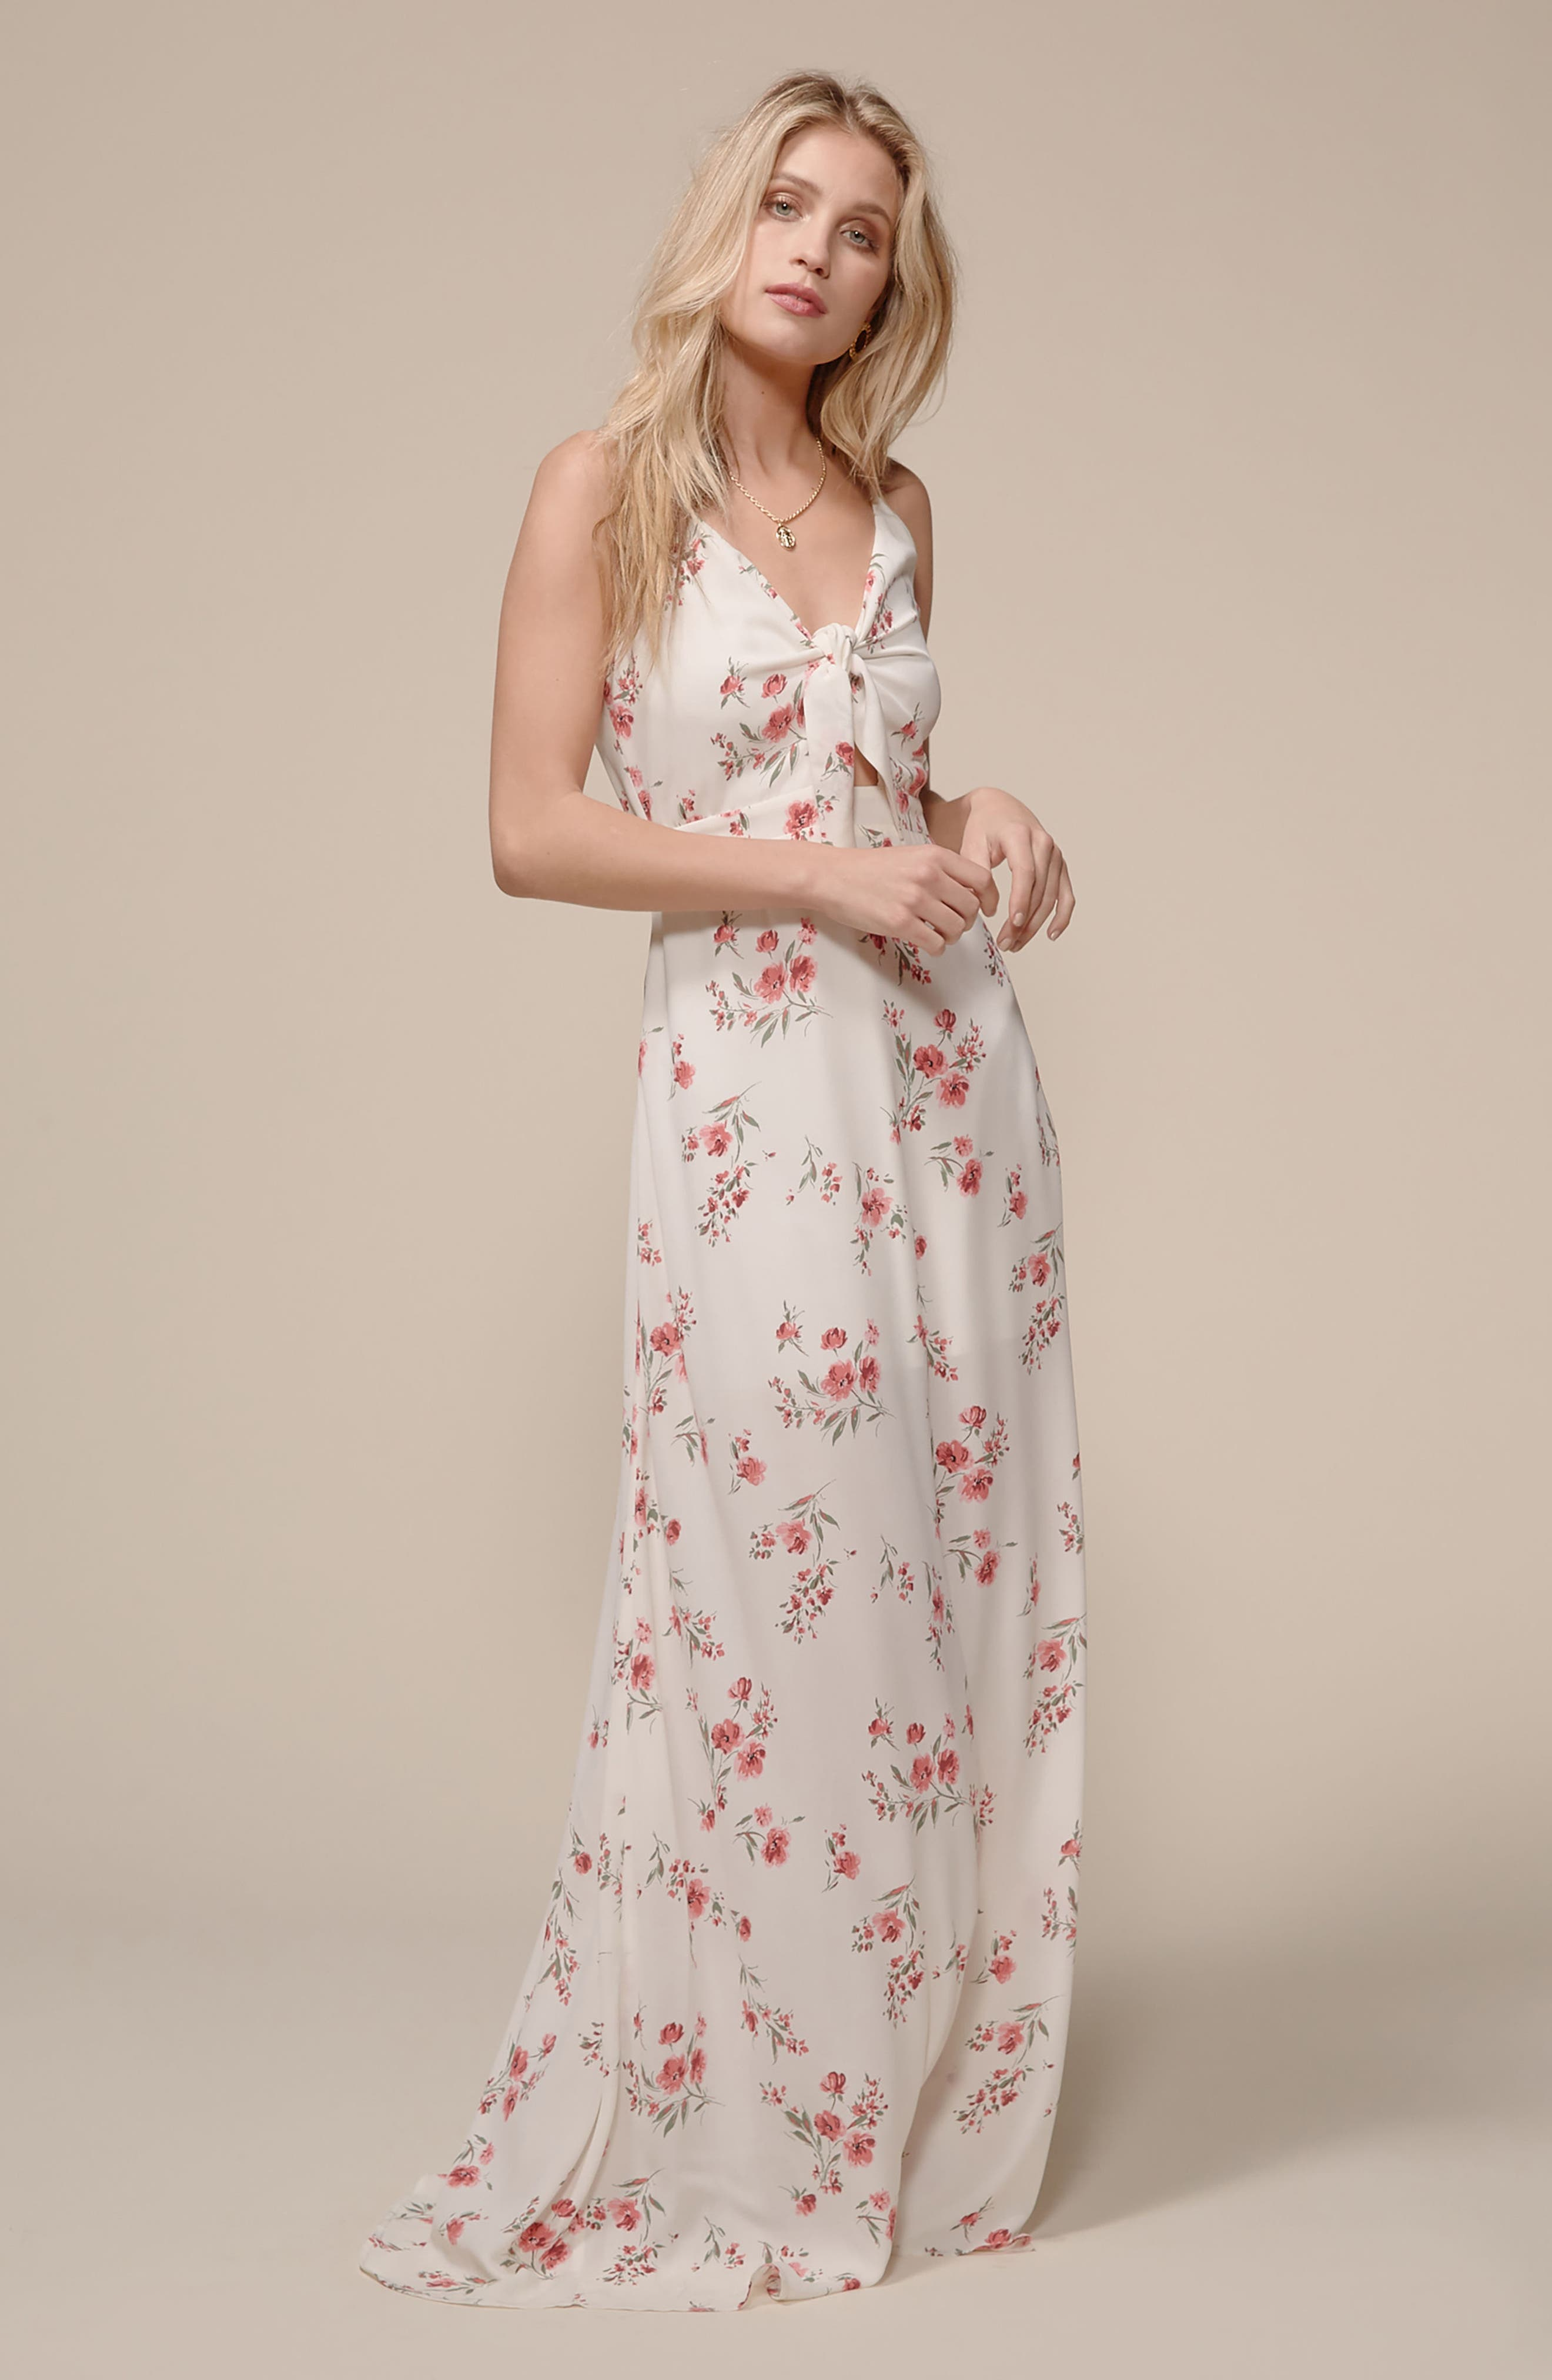 Tie Front Maxi Dress,                             Alternate thumbnail 2, color,                             Ivory Floral